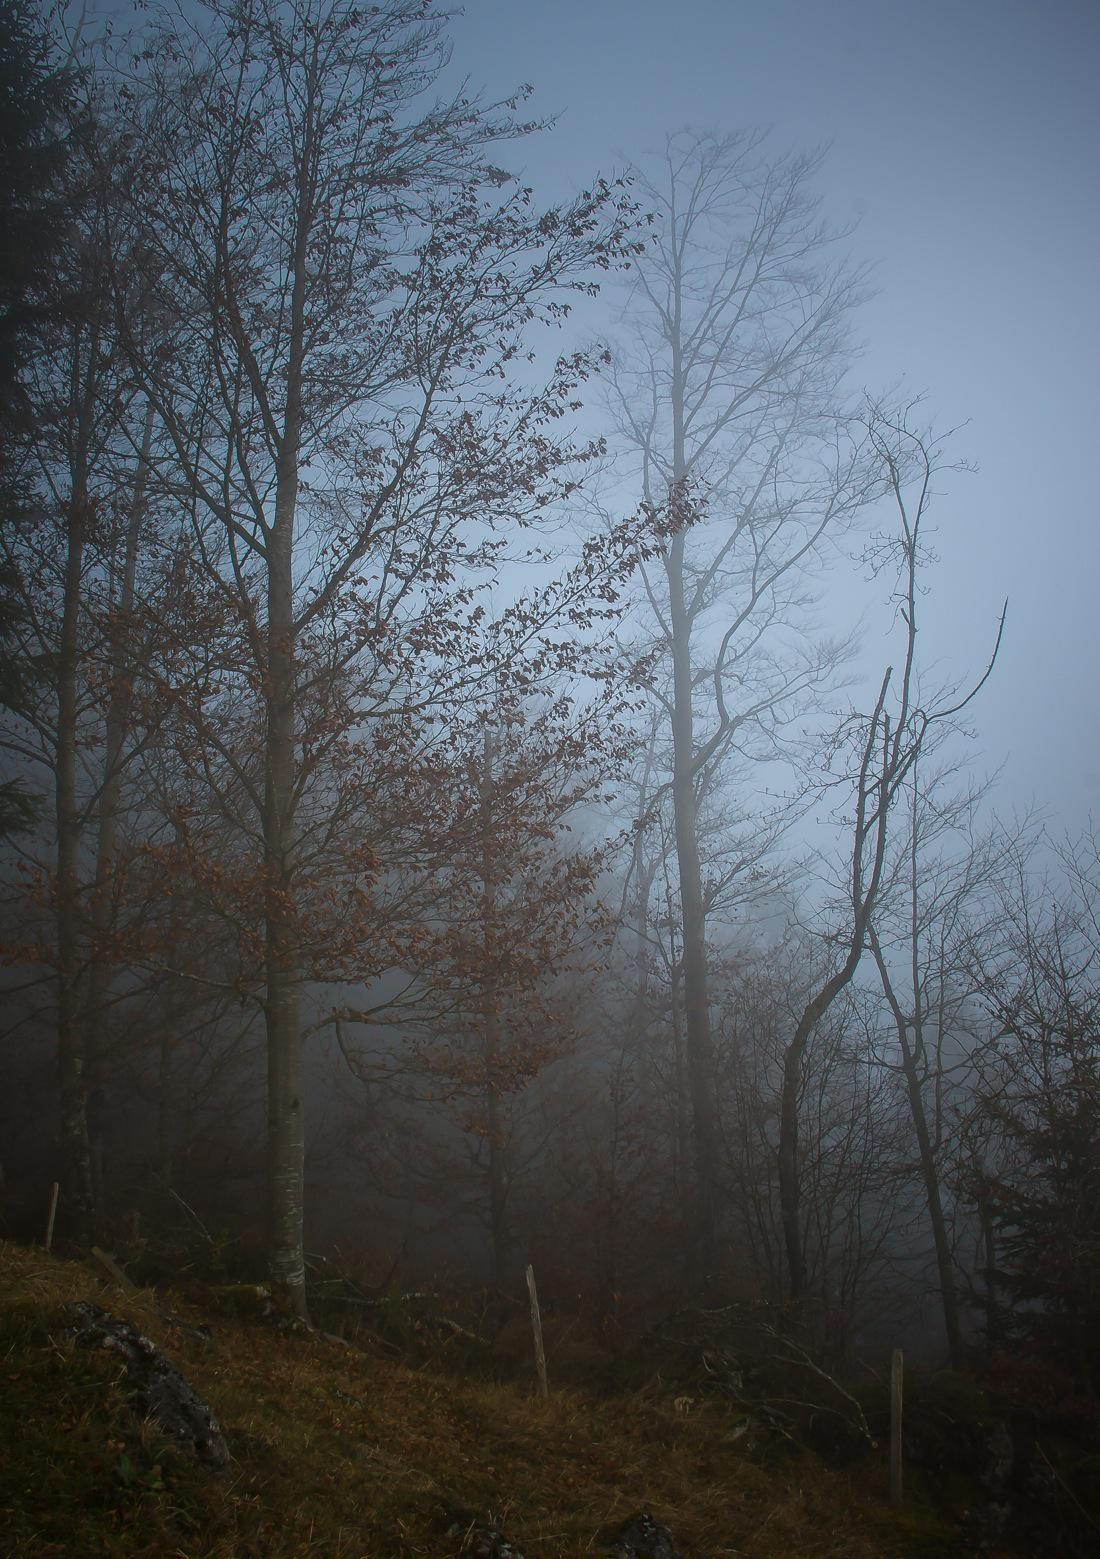 Saanenland, Hiking in the Fog